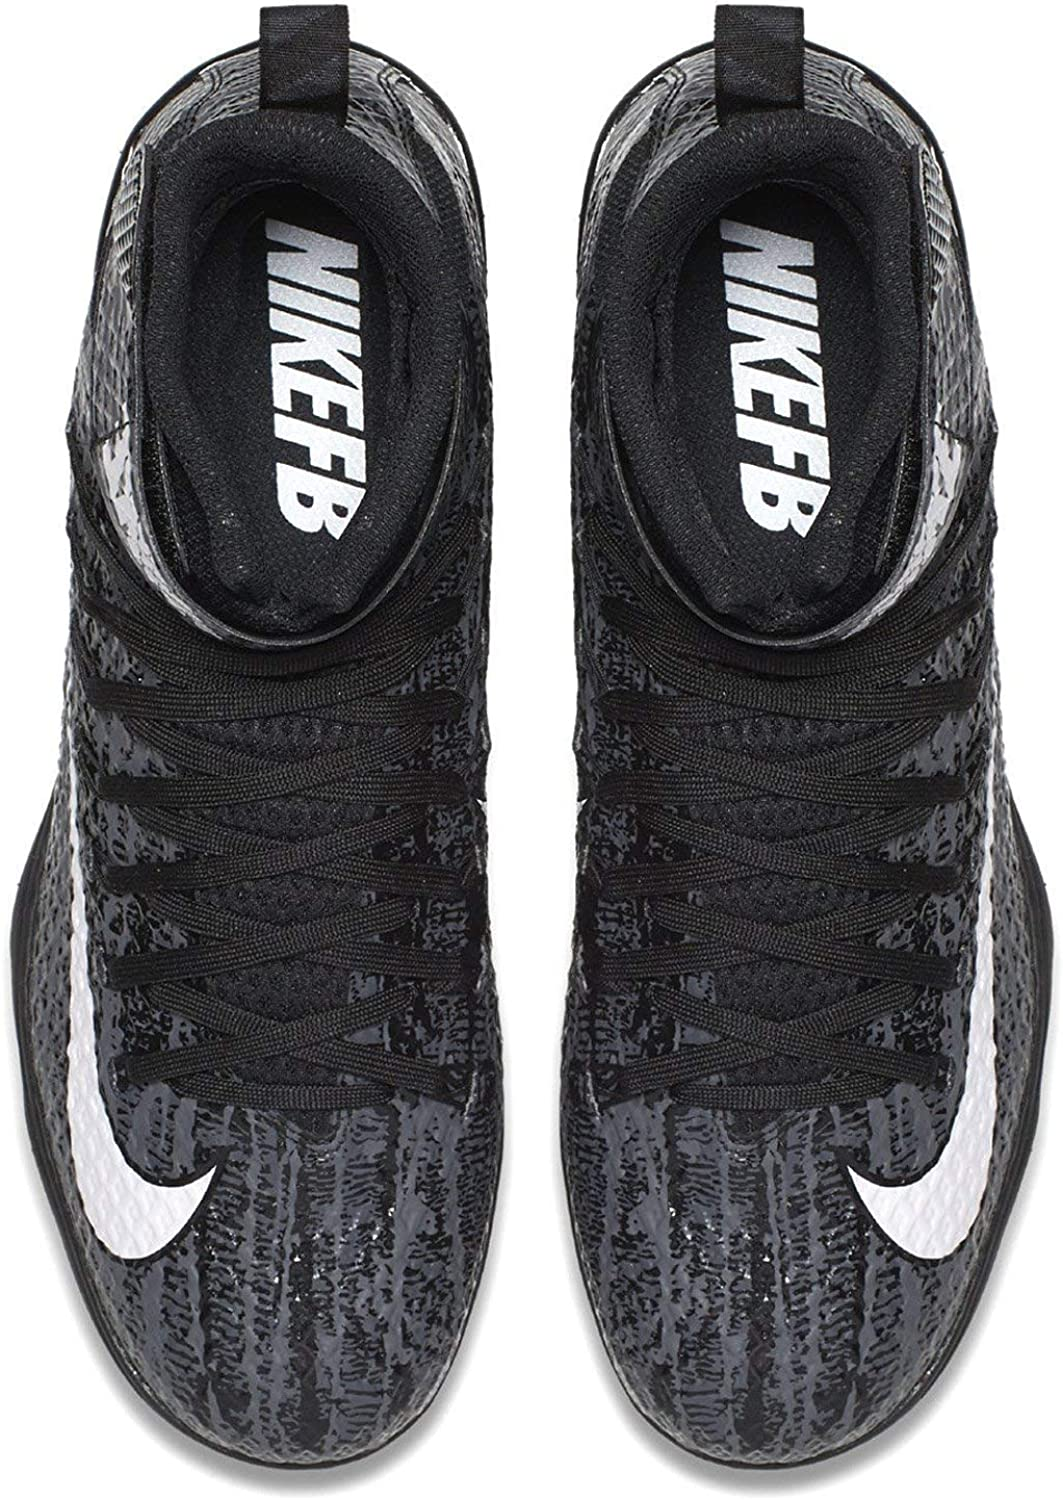 Nike Mens Lunarbeast Elite Football Cleat